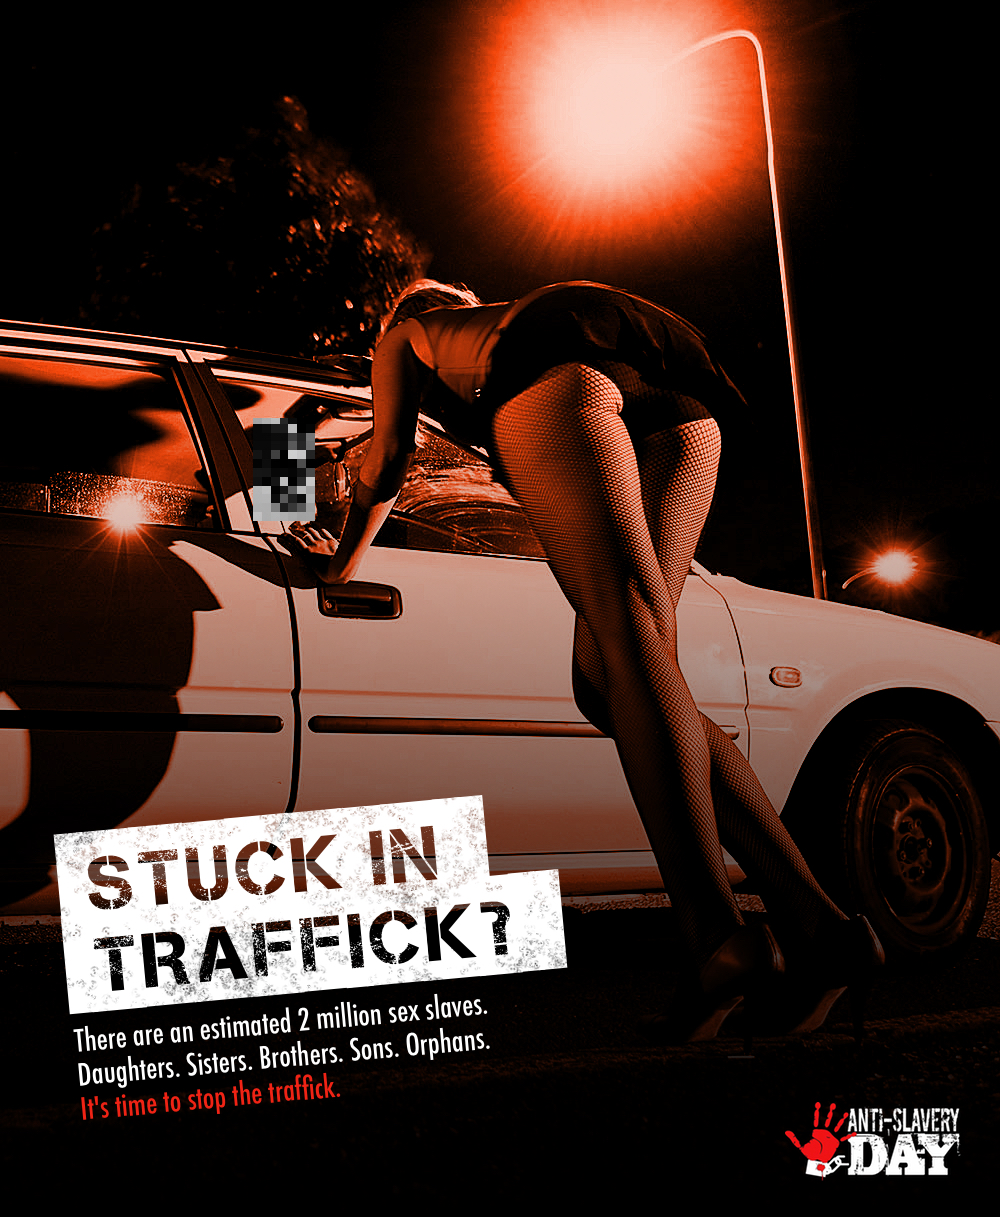 Advertising idea for anti-slavery day - stop the traffick